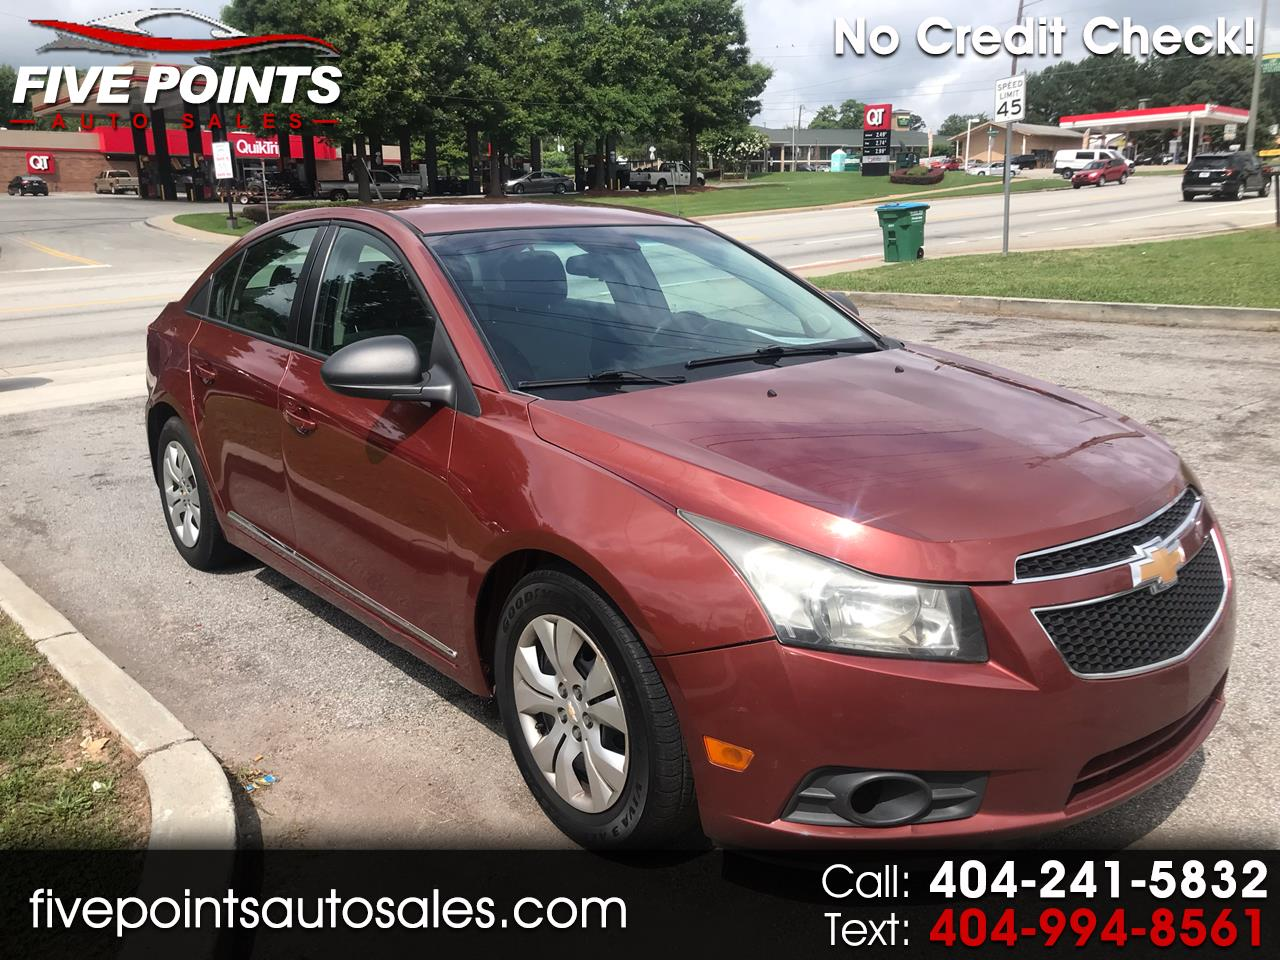 Five Points Auto Sales >> Buy Here Pay Here Cars For Sale Five Points Auto Sales